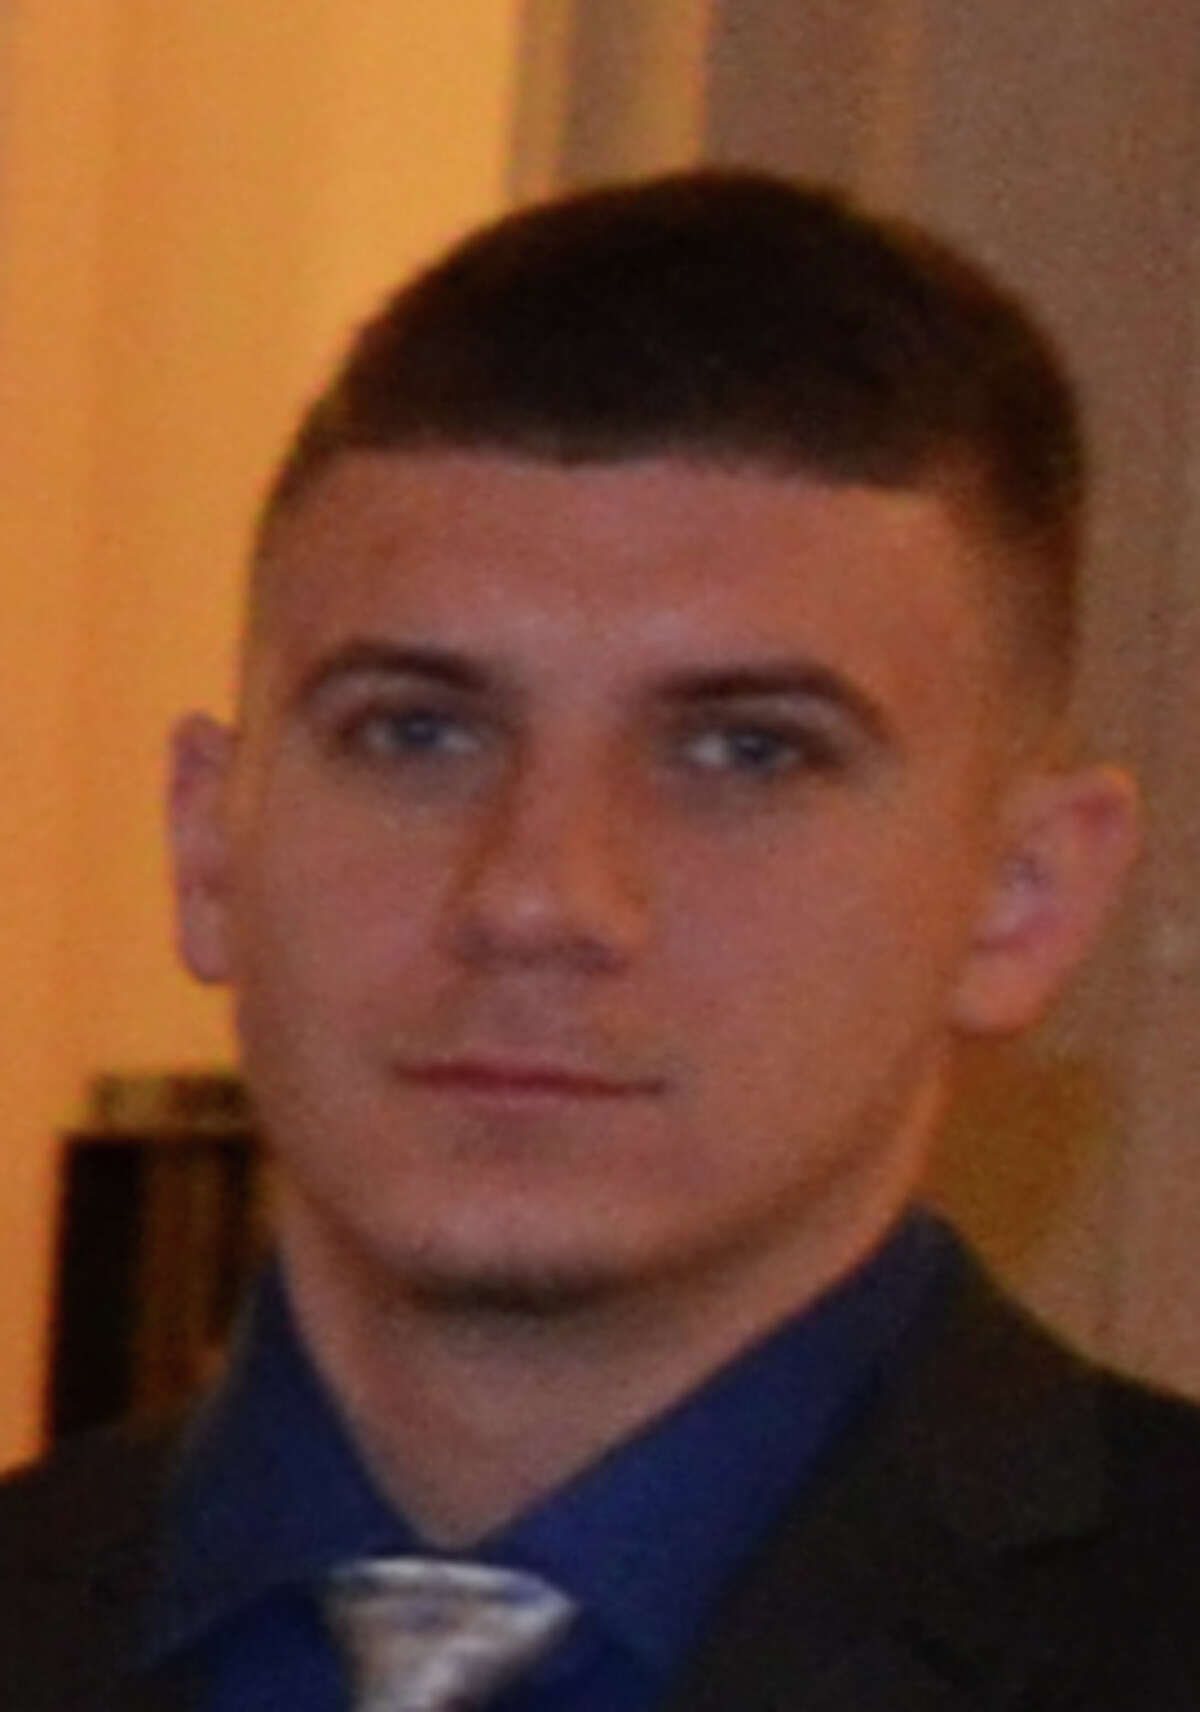 Kevin Pontore (Photo provided by Albany County Sheriff's Office)